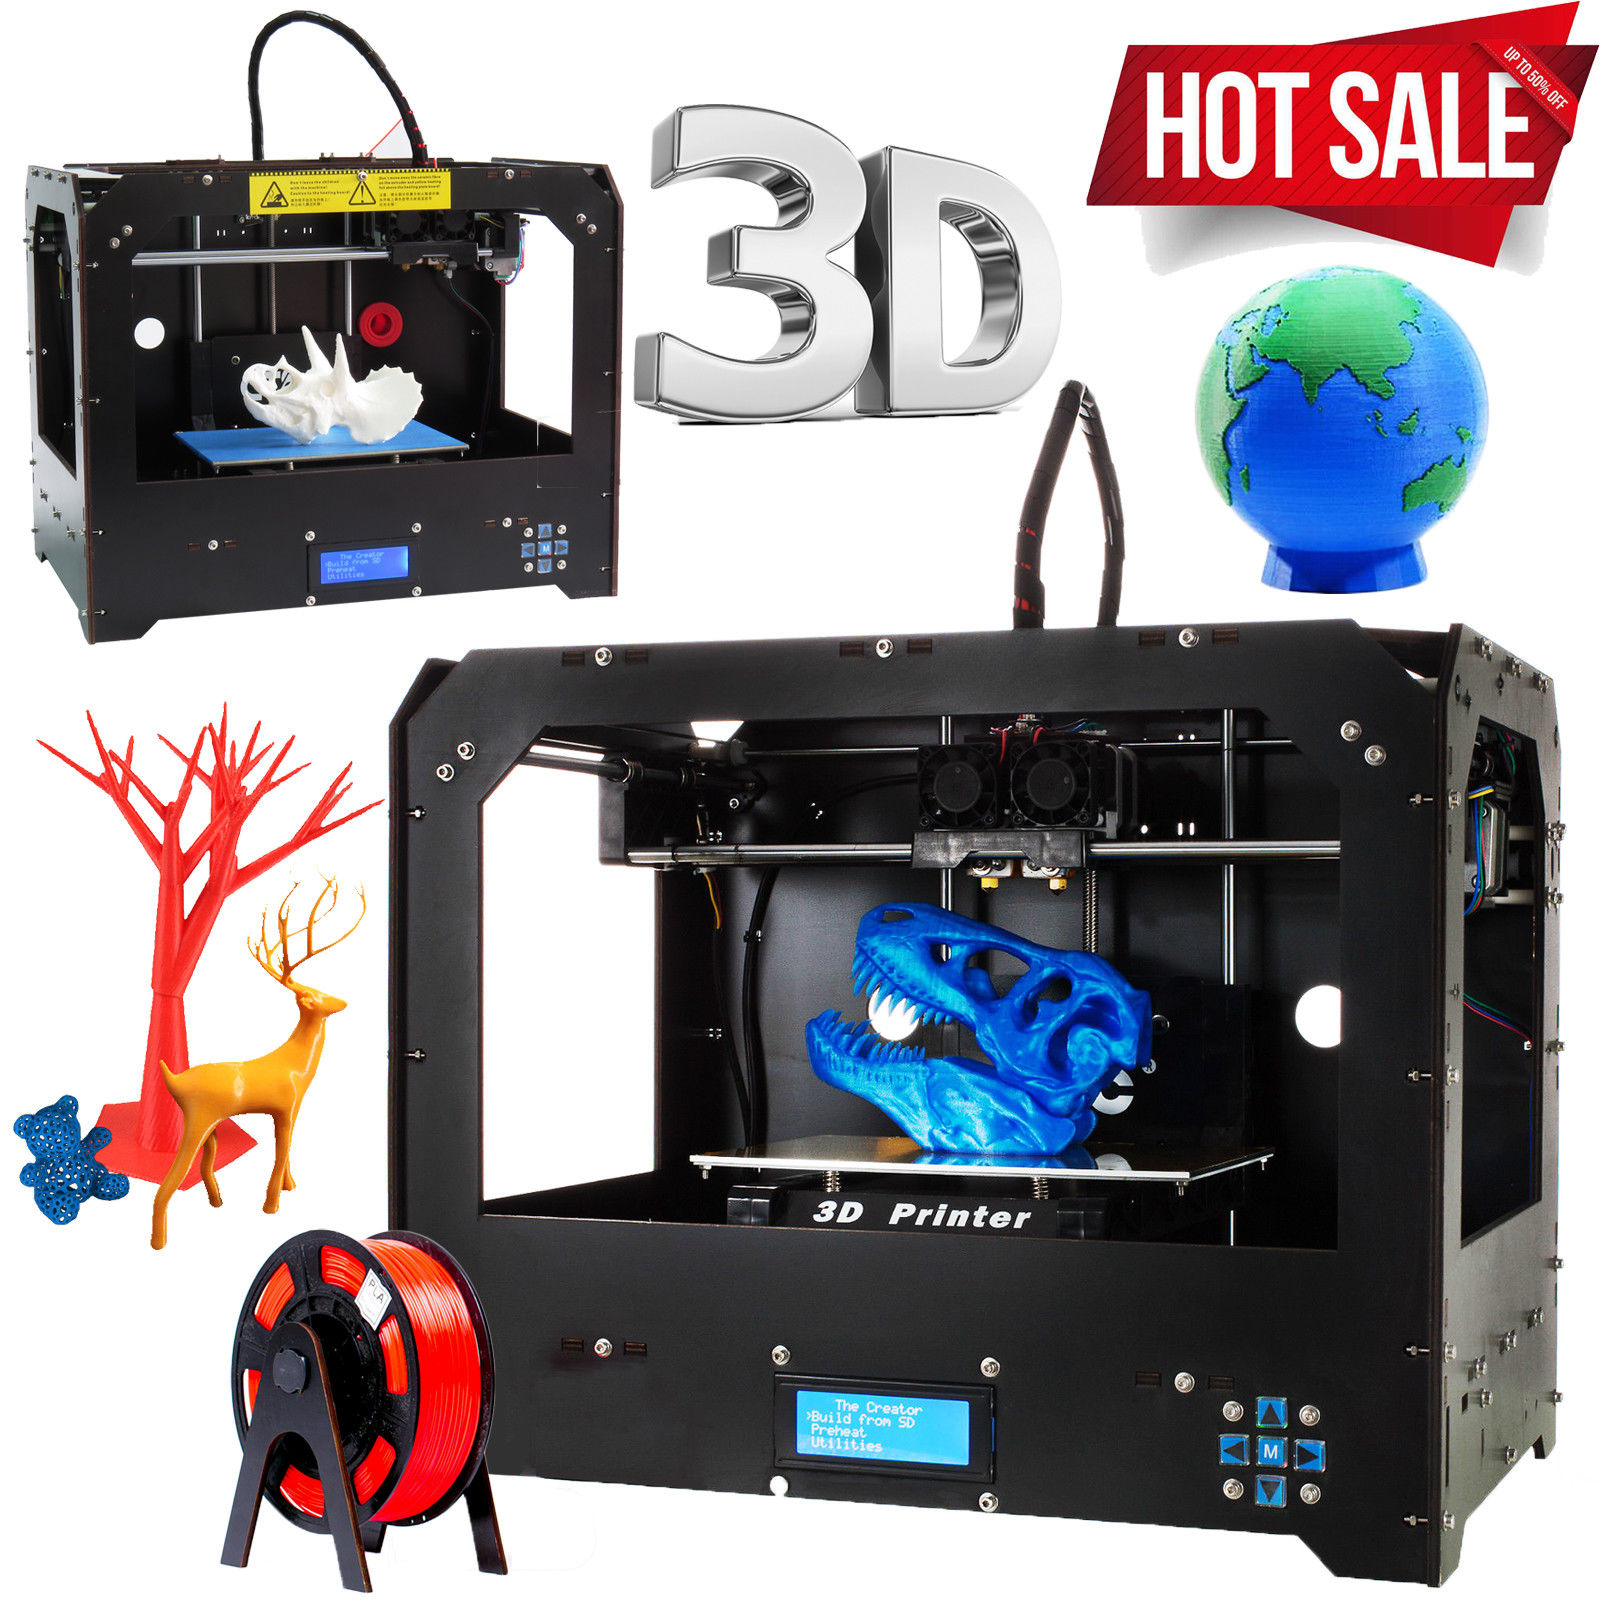 CTC FDM 3D Printer Bizer Dual Extruder & MK8 MakerBot Replicator PLA / ABS USA Stock